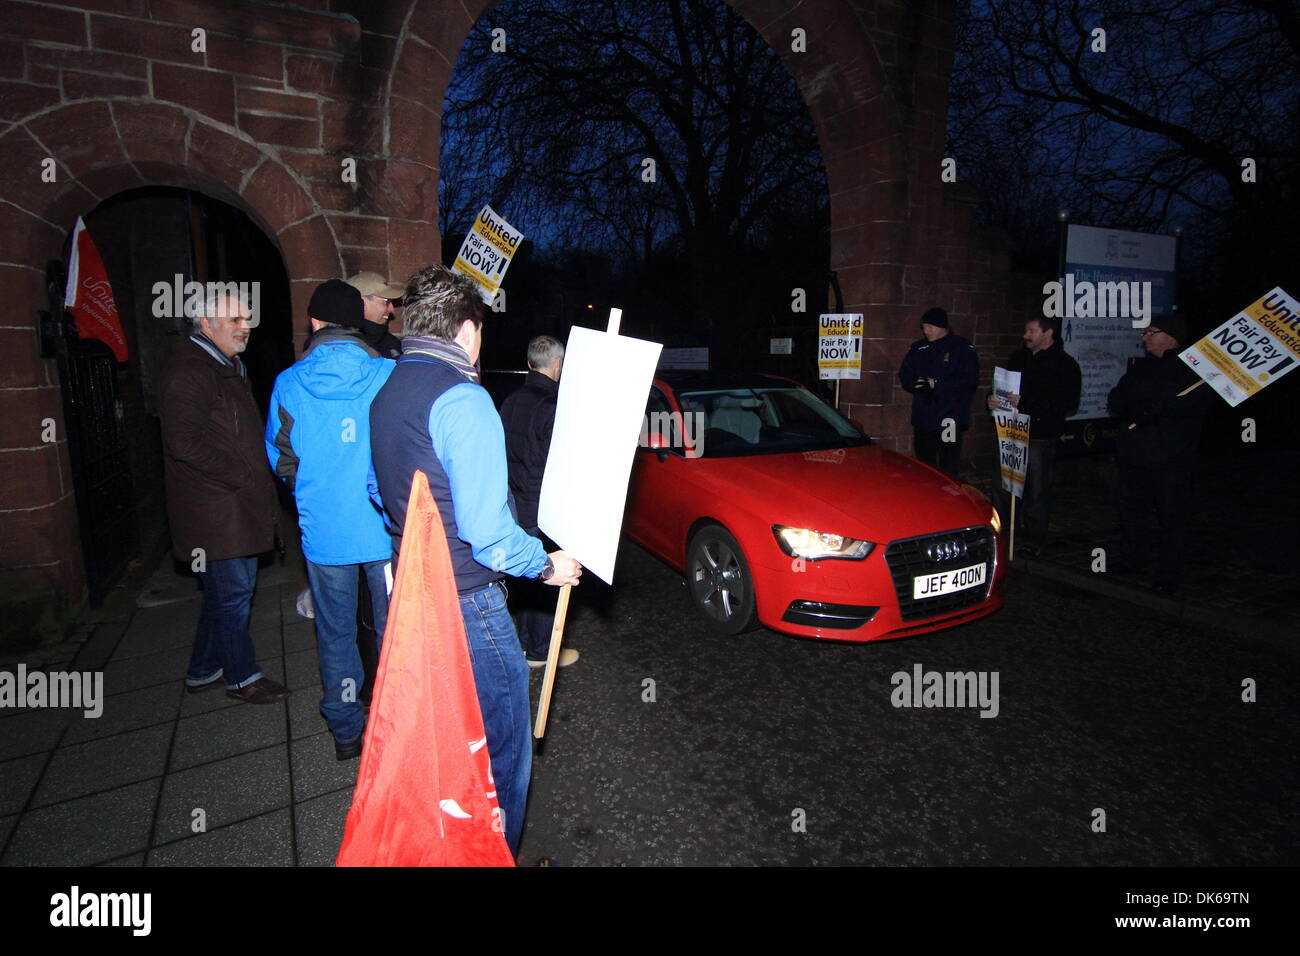 Glasgow, Scotland, UK. 3rd Dec 2013 Glasgow university, University Ave, Glasgow, Scotland, UK - Staff from UCU, - Stock Image